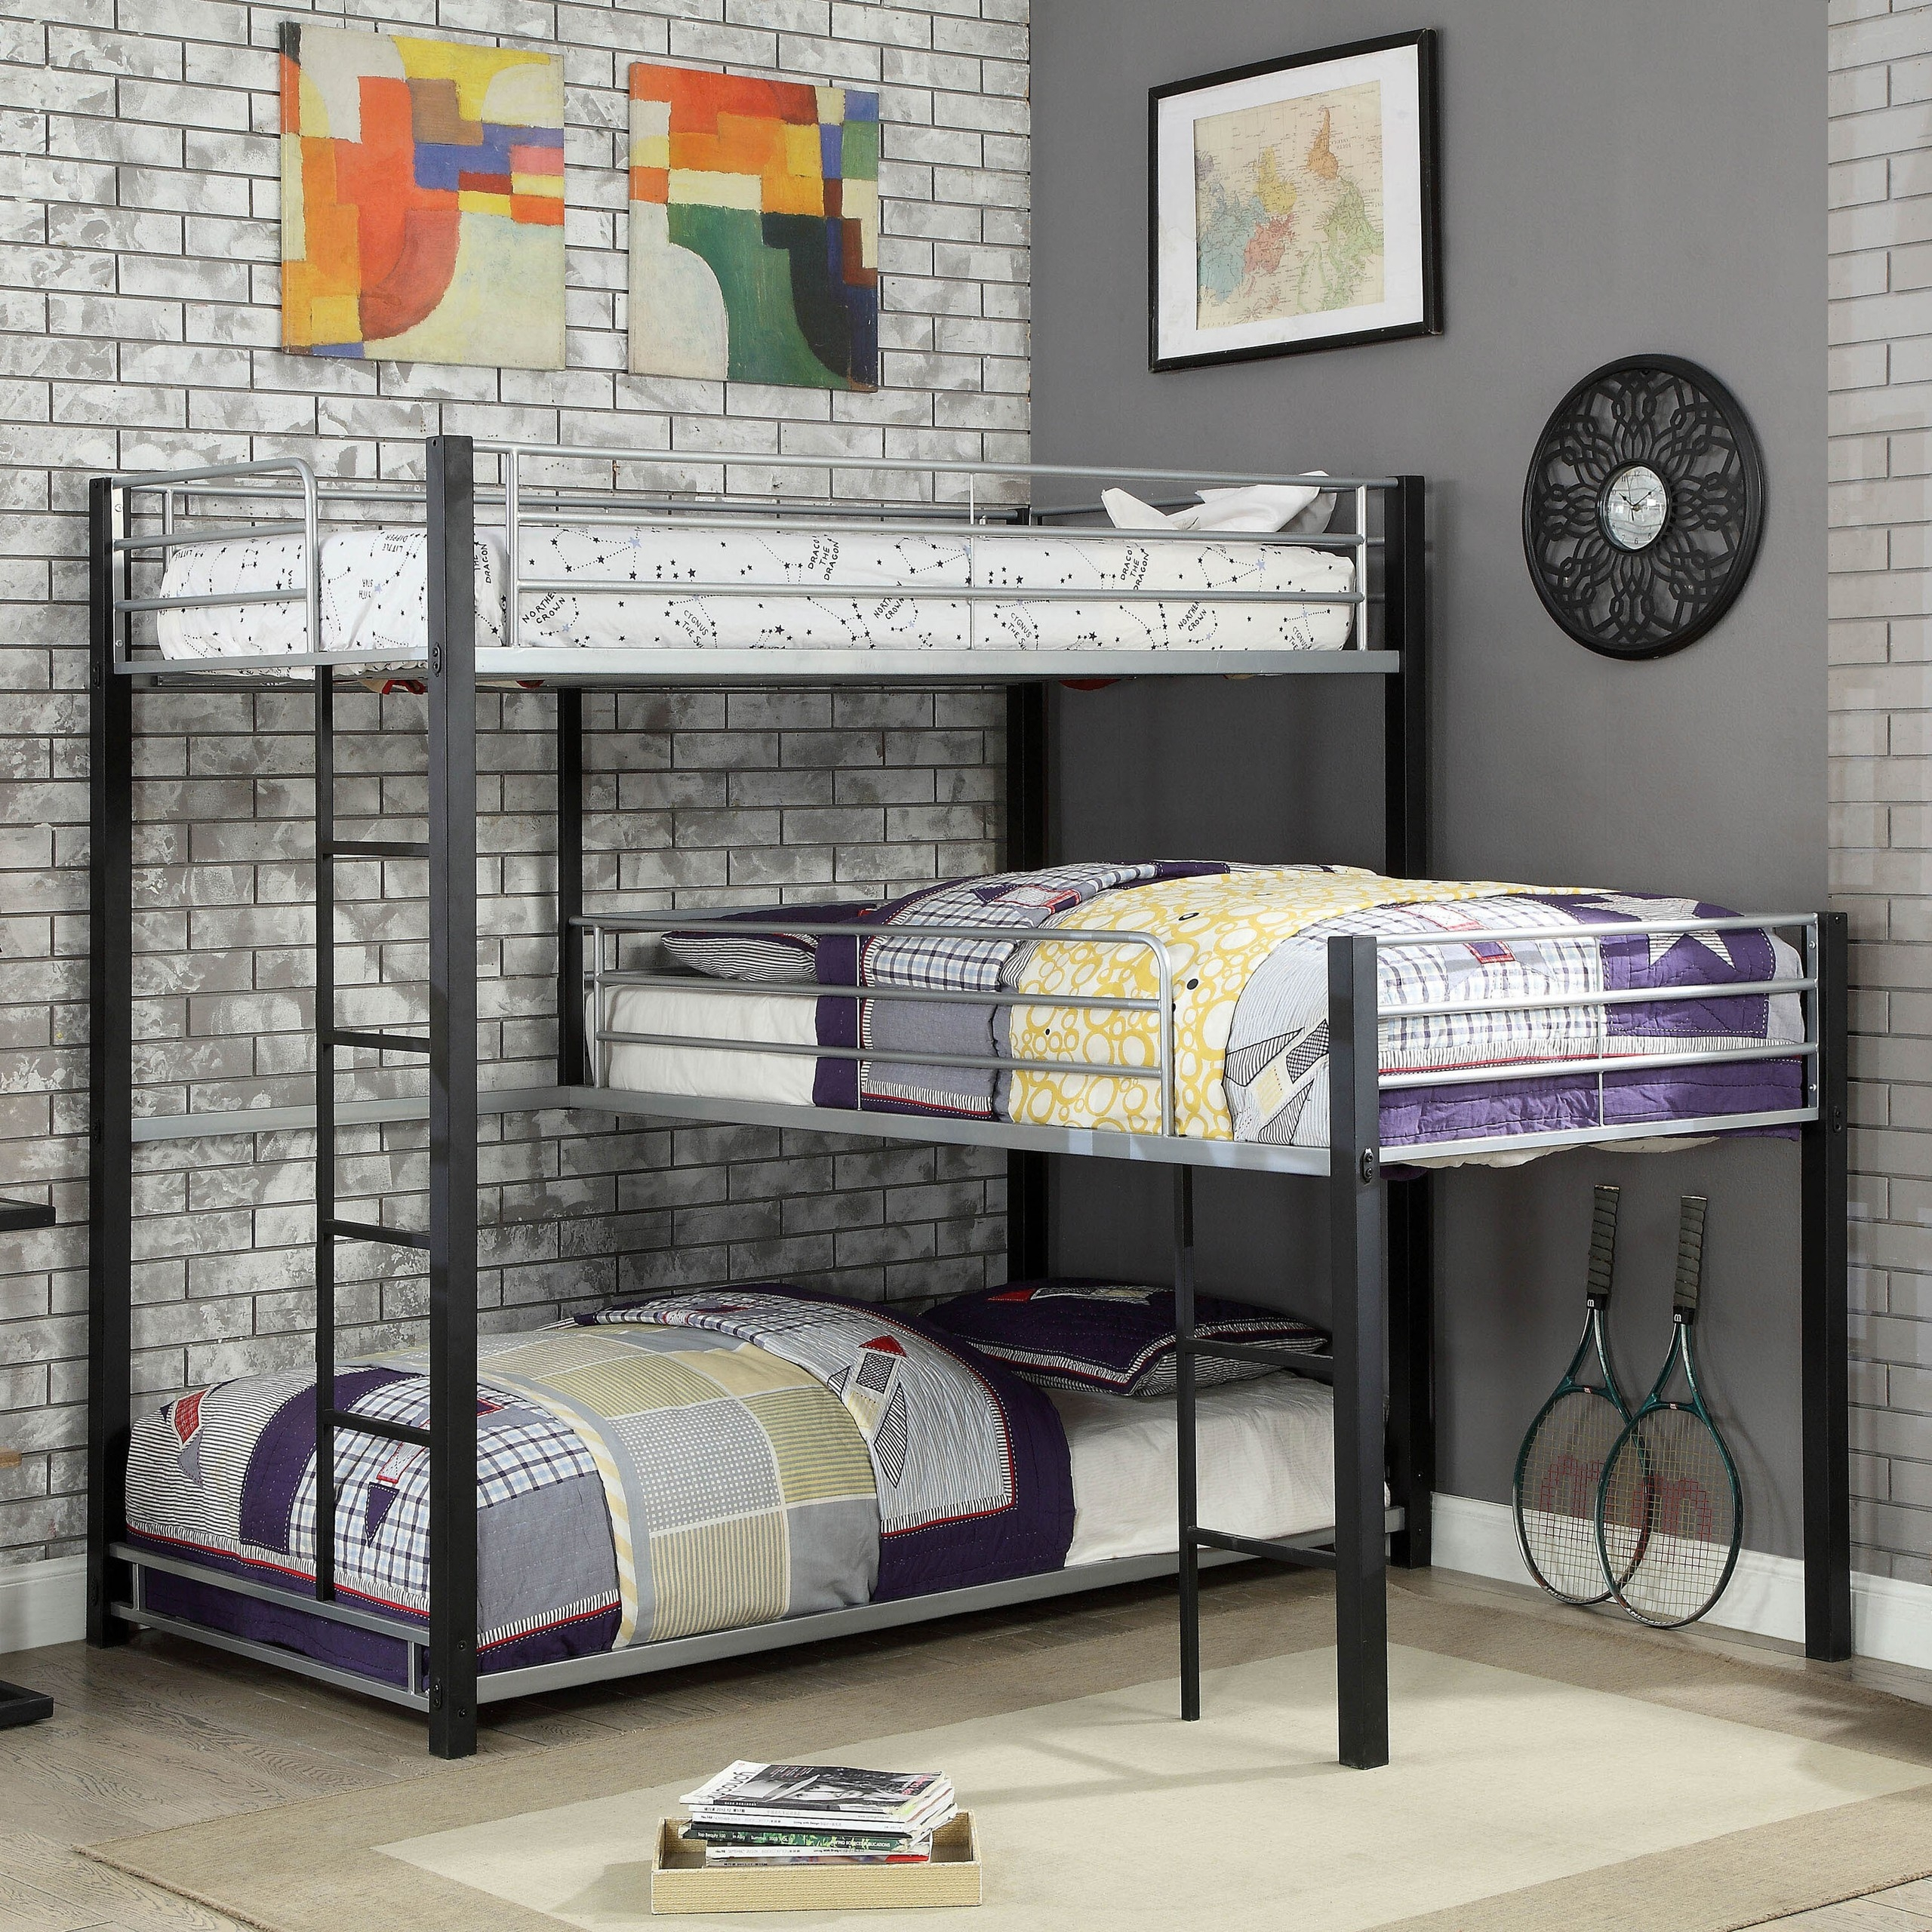 Picture of: 7 Cool Designs For Triple Bunk Beds Foter